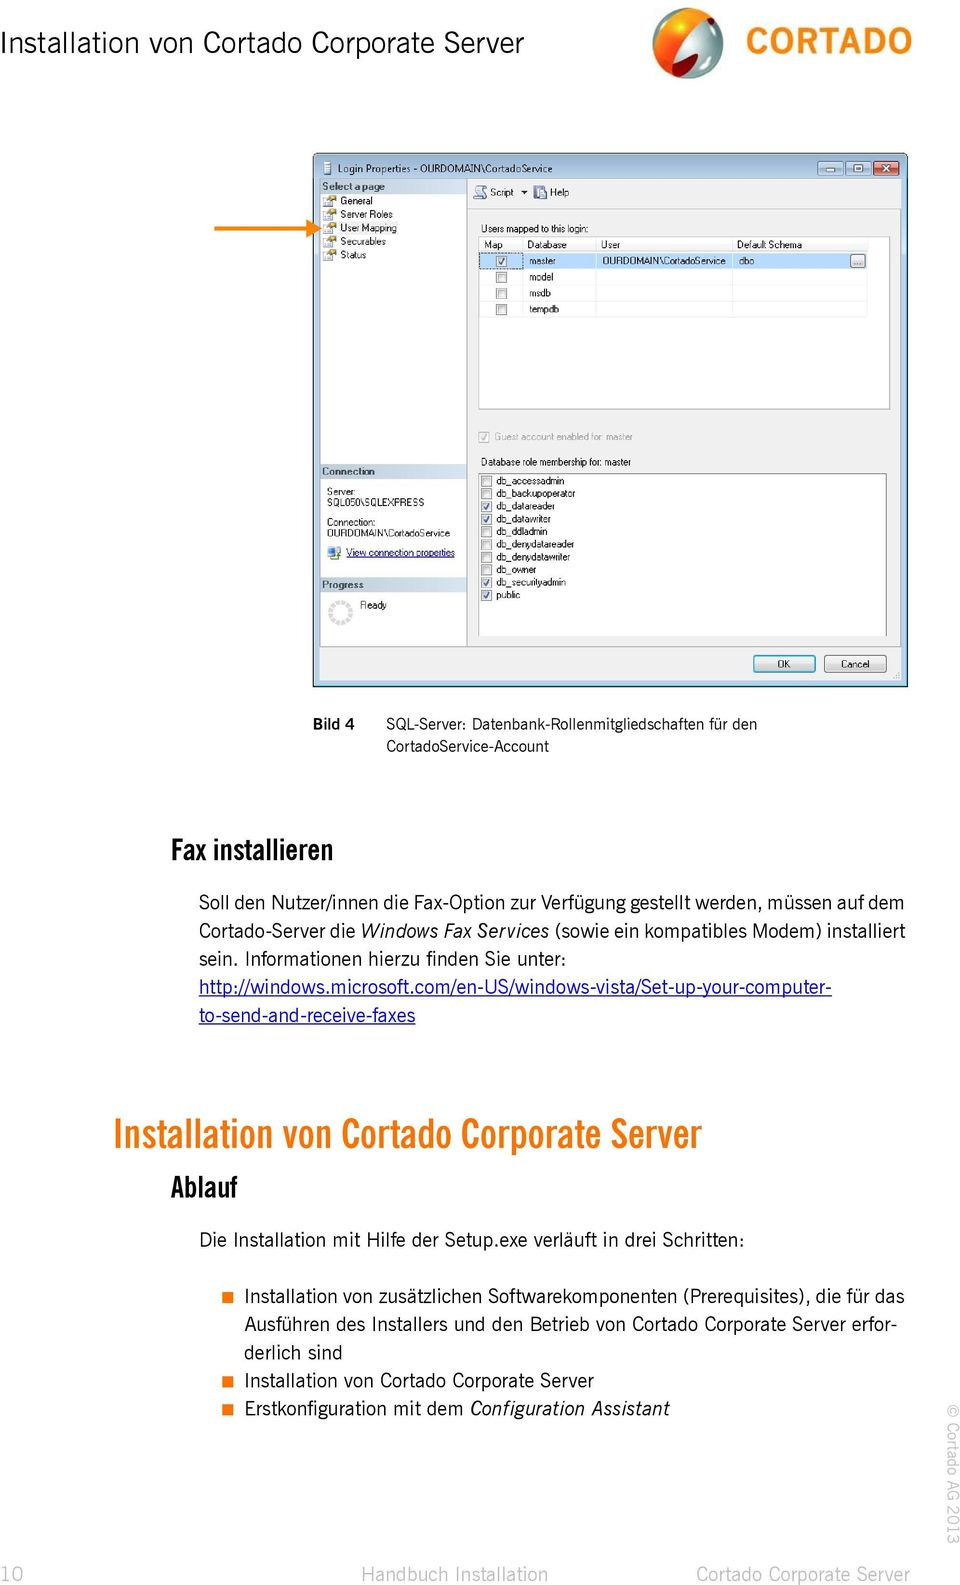 com/en-us/windows-vista/set-up-your-computerto-send-and-receive-faxes Installation von Cortado Corporate Server Ablauf Die Installation mit Hilfe der Setup.